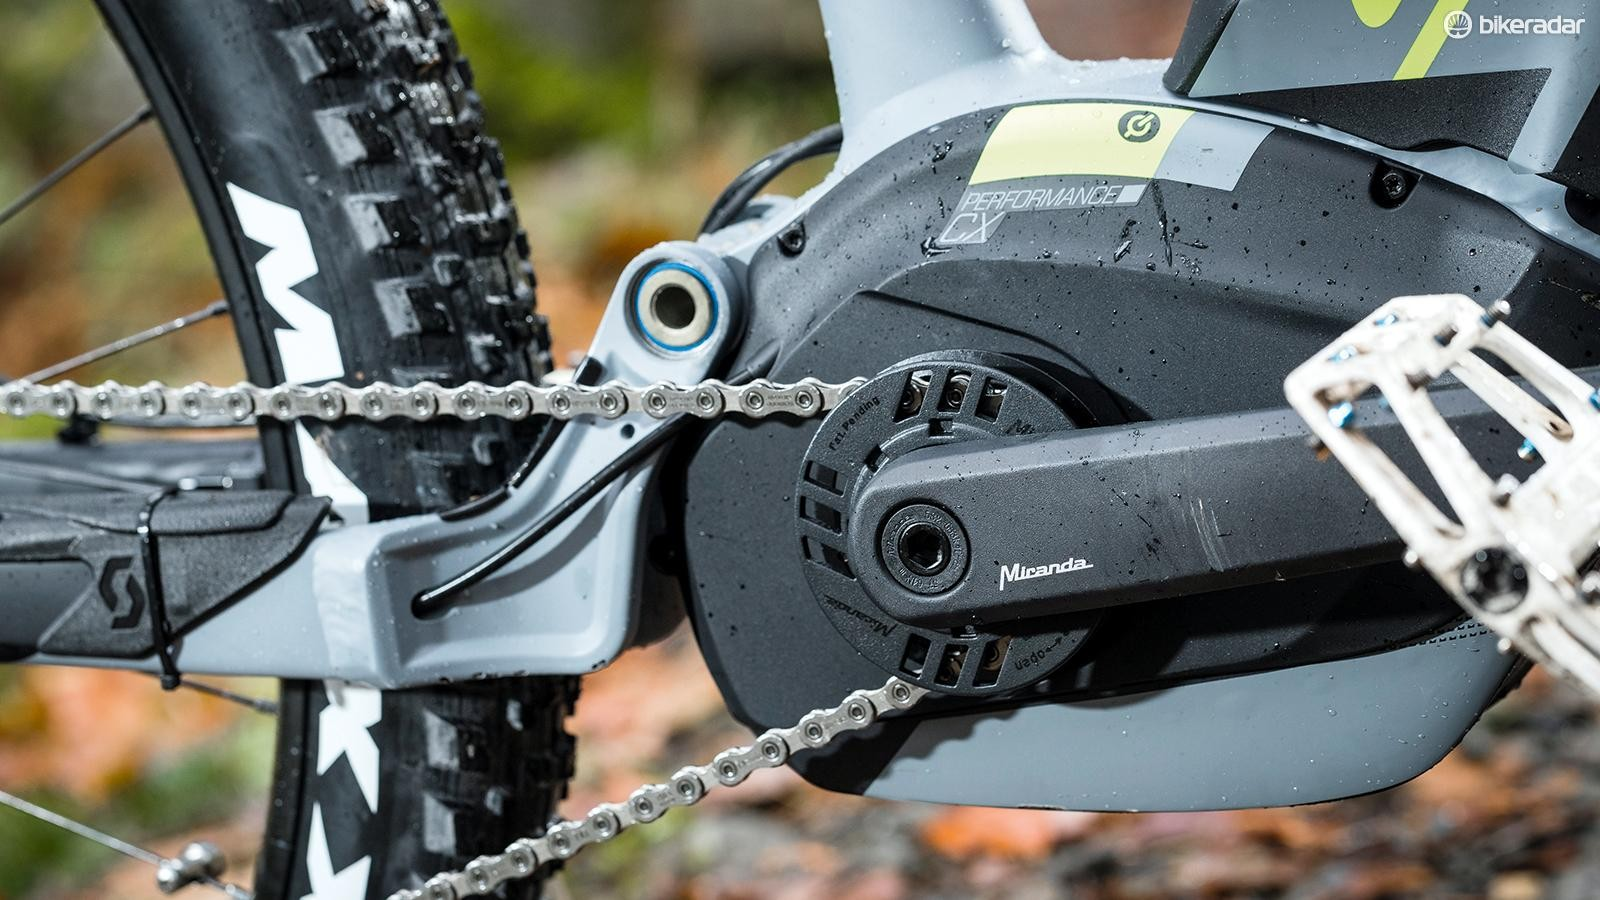 Ground clearance isn't limited by the chainring on the Scott E-Genius 710 Plus